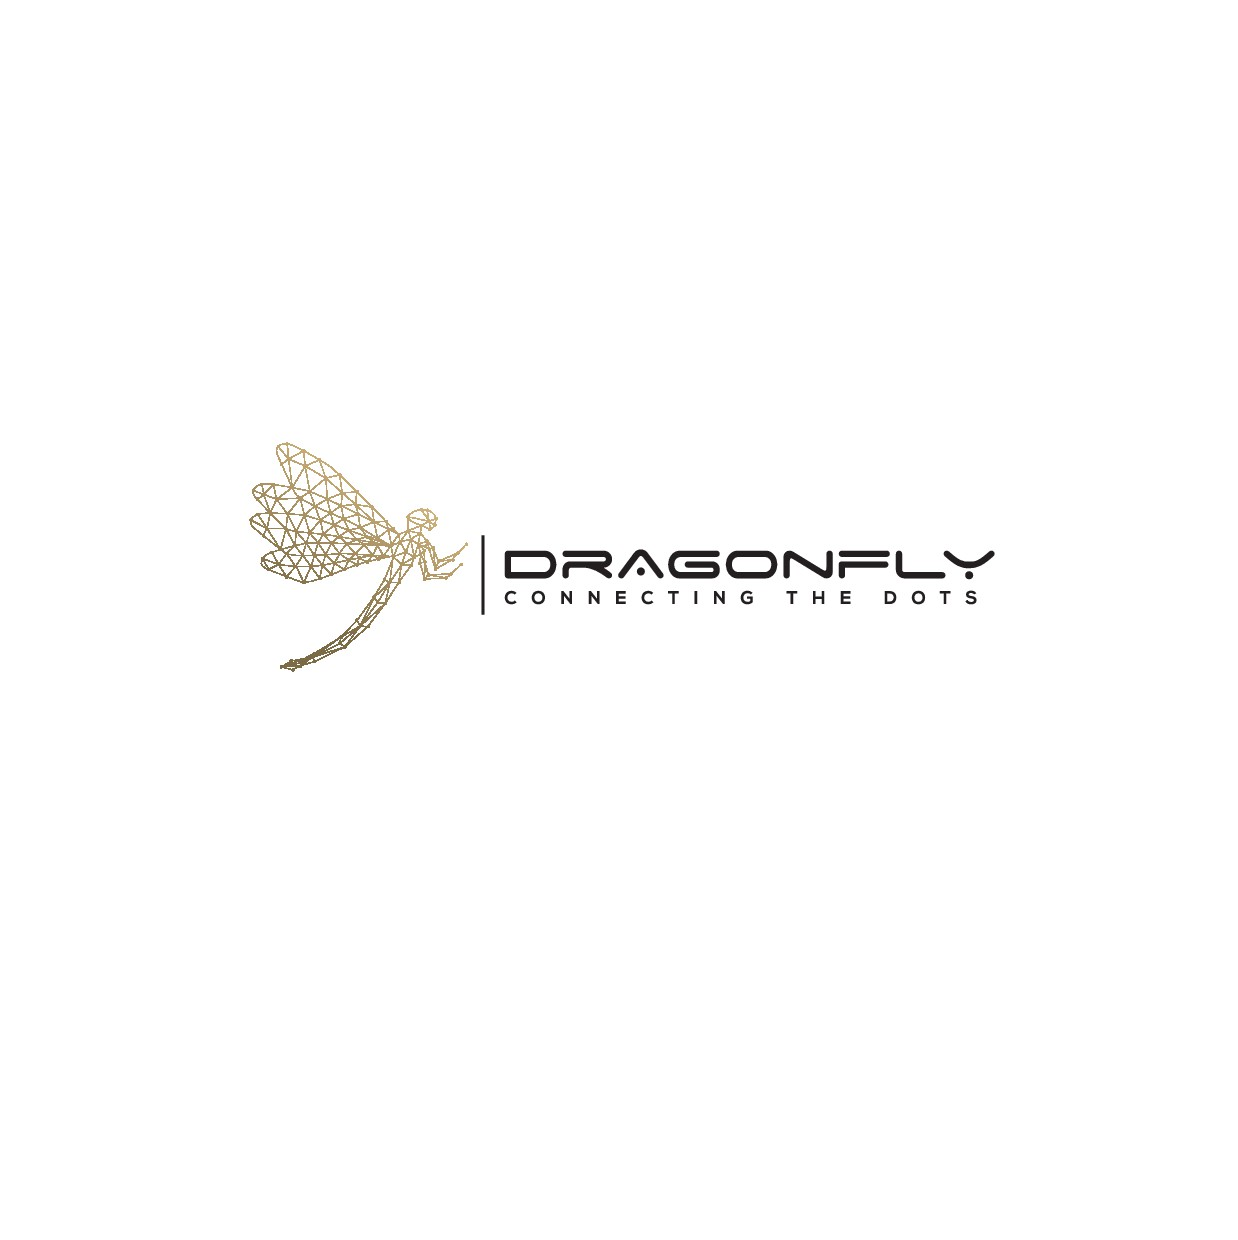 Corporate, clean, minimalist logo & card - think DRAGONFLY, with lines, connected dots & motion!